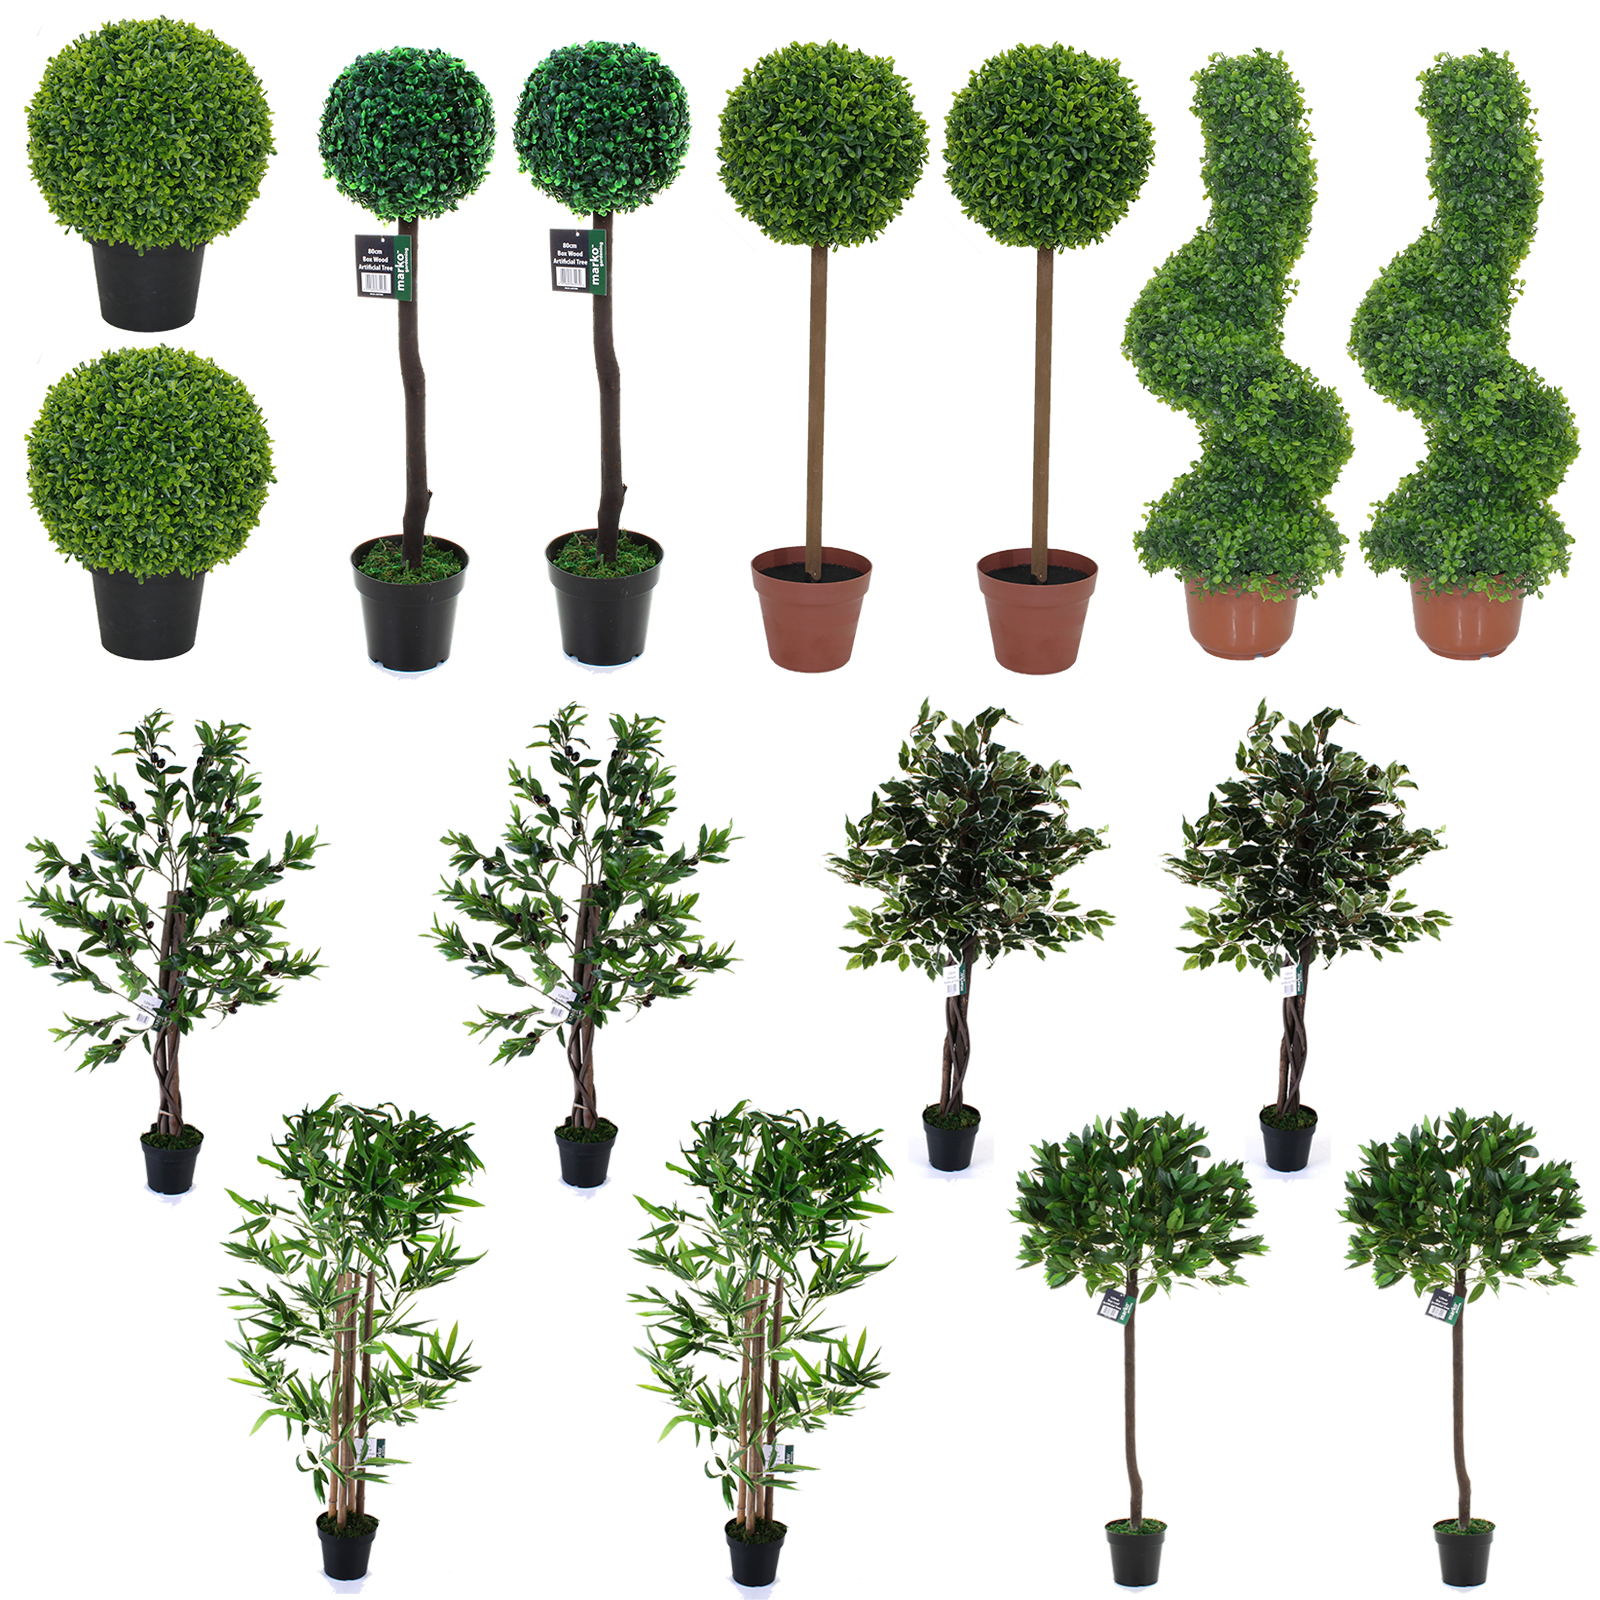 Beautiful manicured garden mature trees potted stock photo